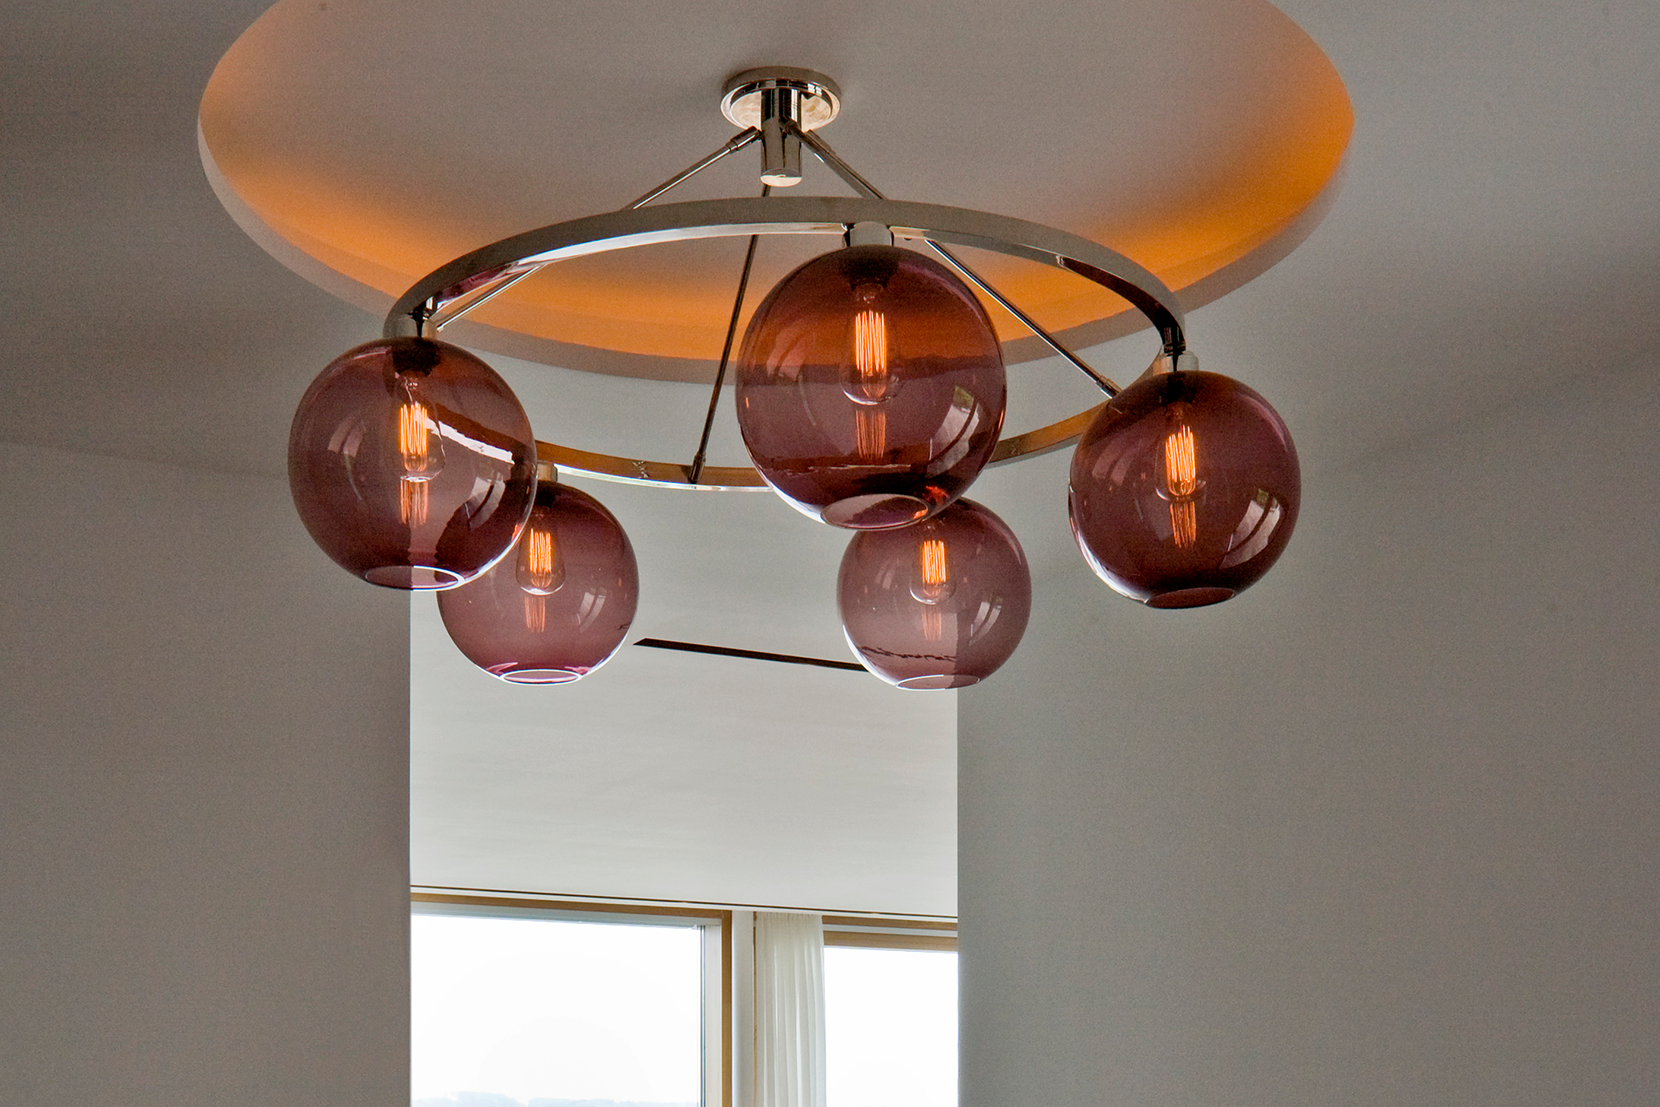 Modern lighting blog niches modern chandelier collections have customizable features to make designing your own contemporary fixture easy our modern chandeliers are perfect arubaitofo Images